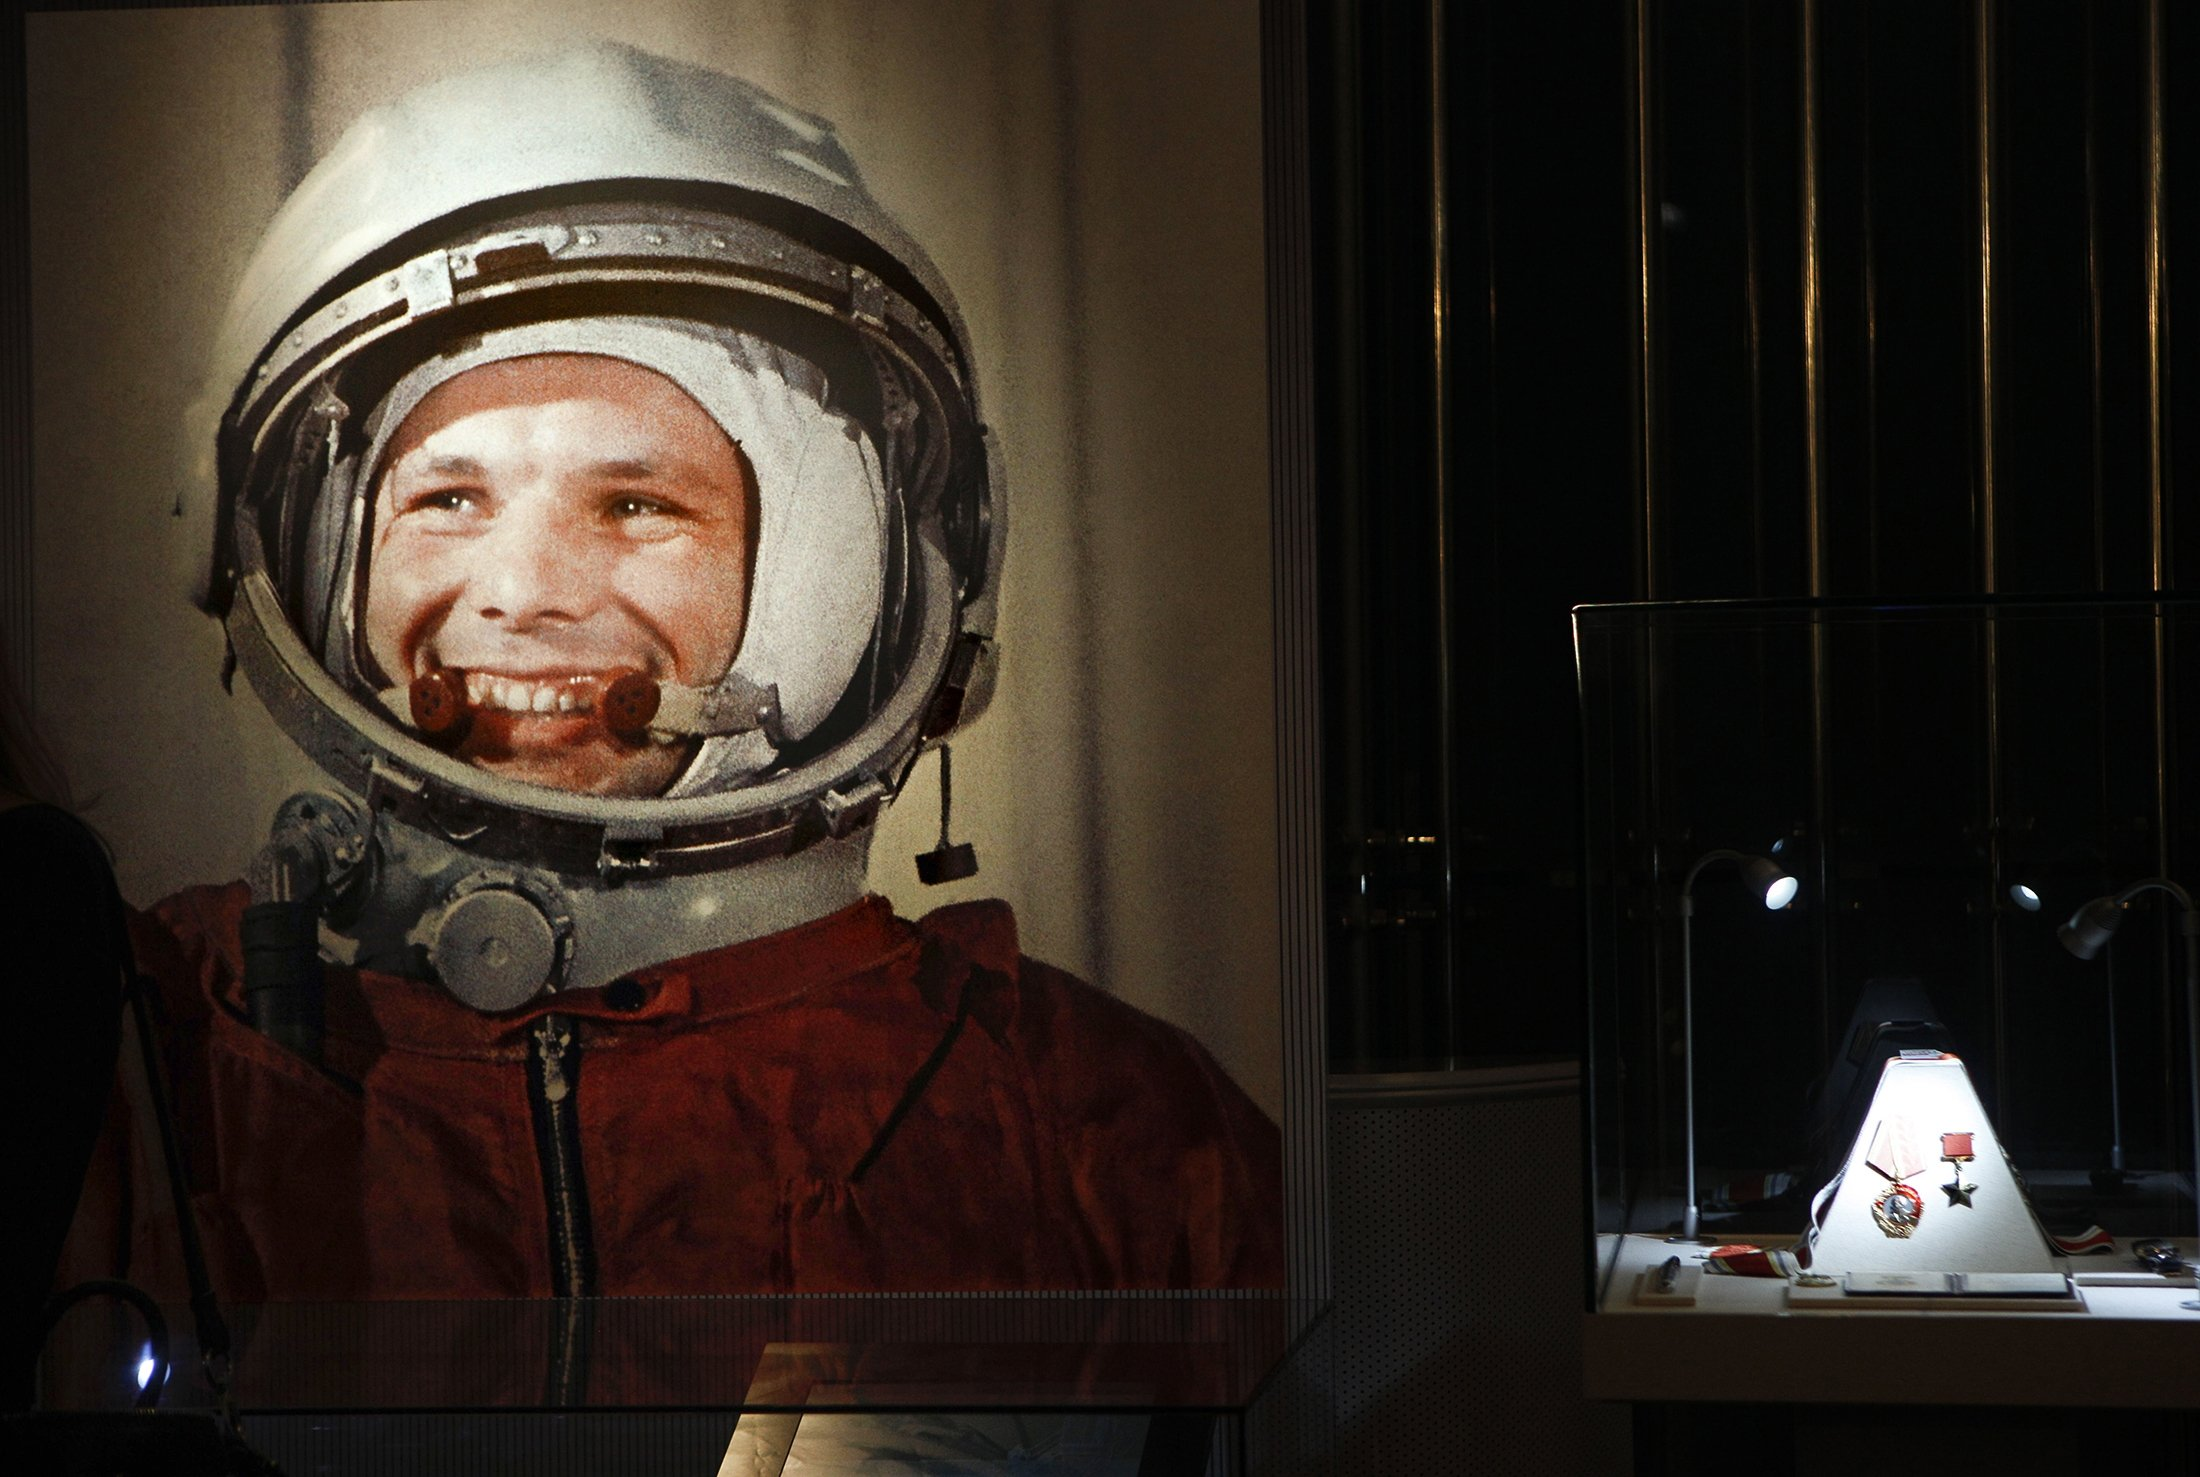 In this file photo taken on April 11, 2011, an undated portrait of the first man in space, Yuri Gagarin, and his award of the Hero of the Soviet Union, at right, part of an exhibition dedicated to the 50th anniversary of the first man in space, in Moscow, Russia. (AP Photo)